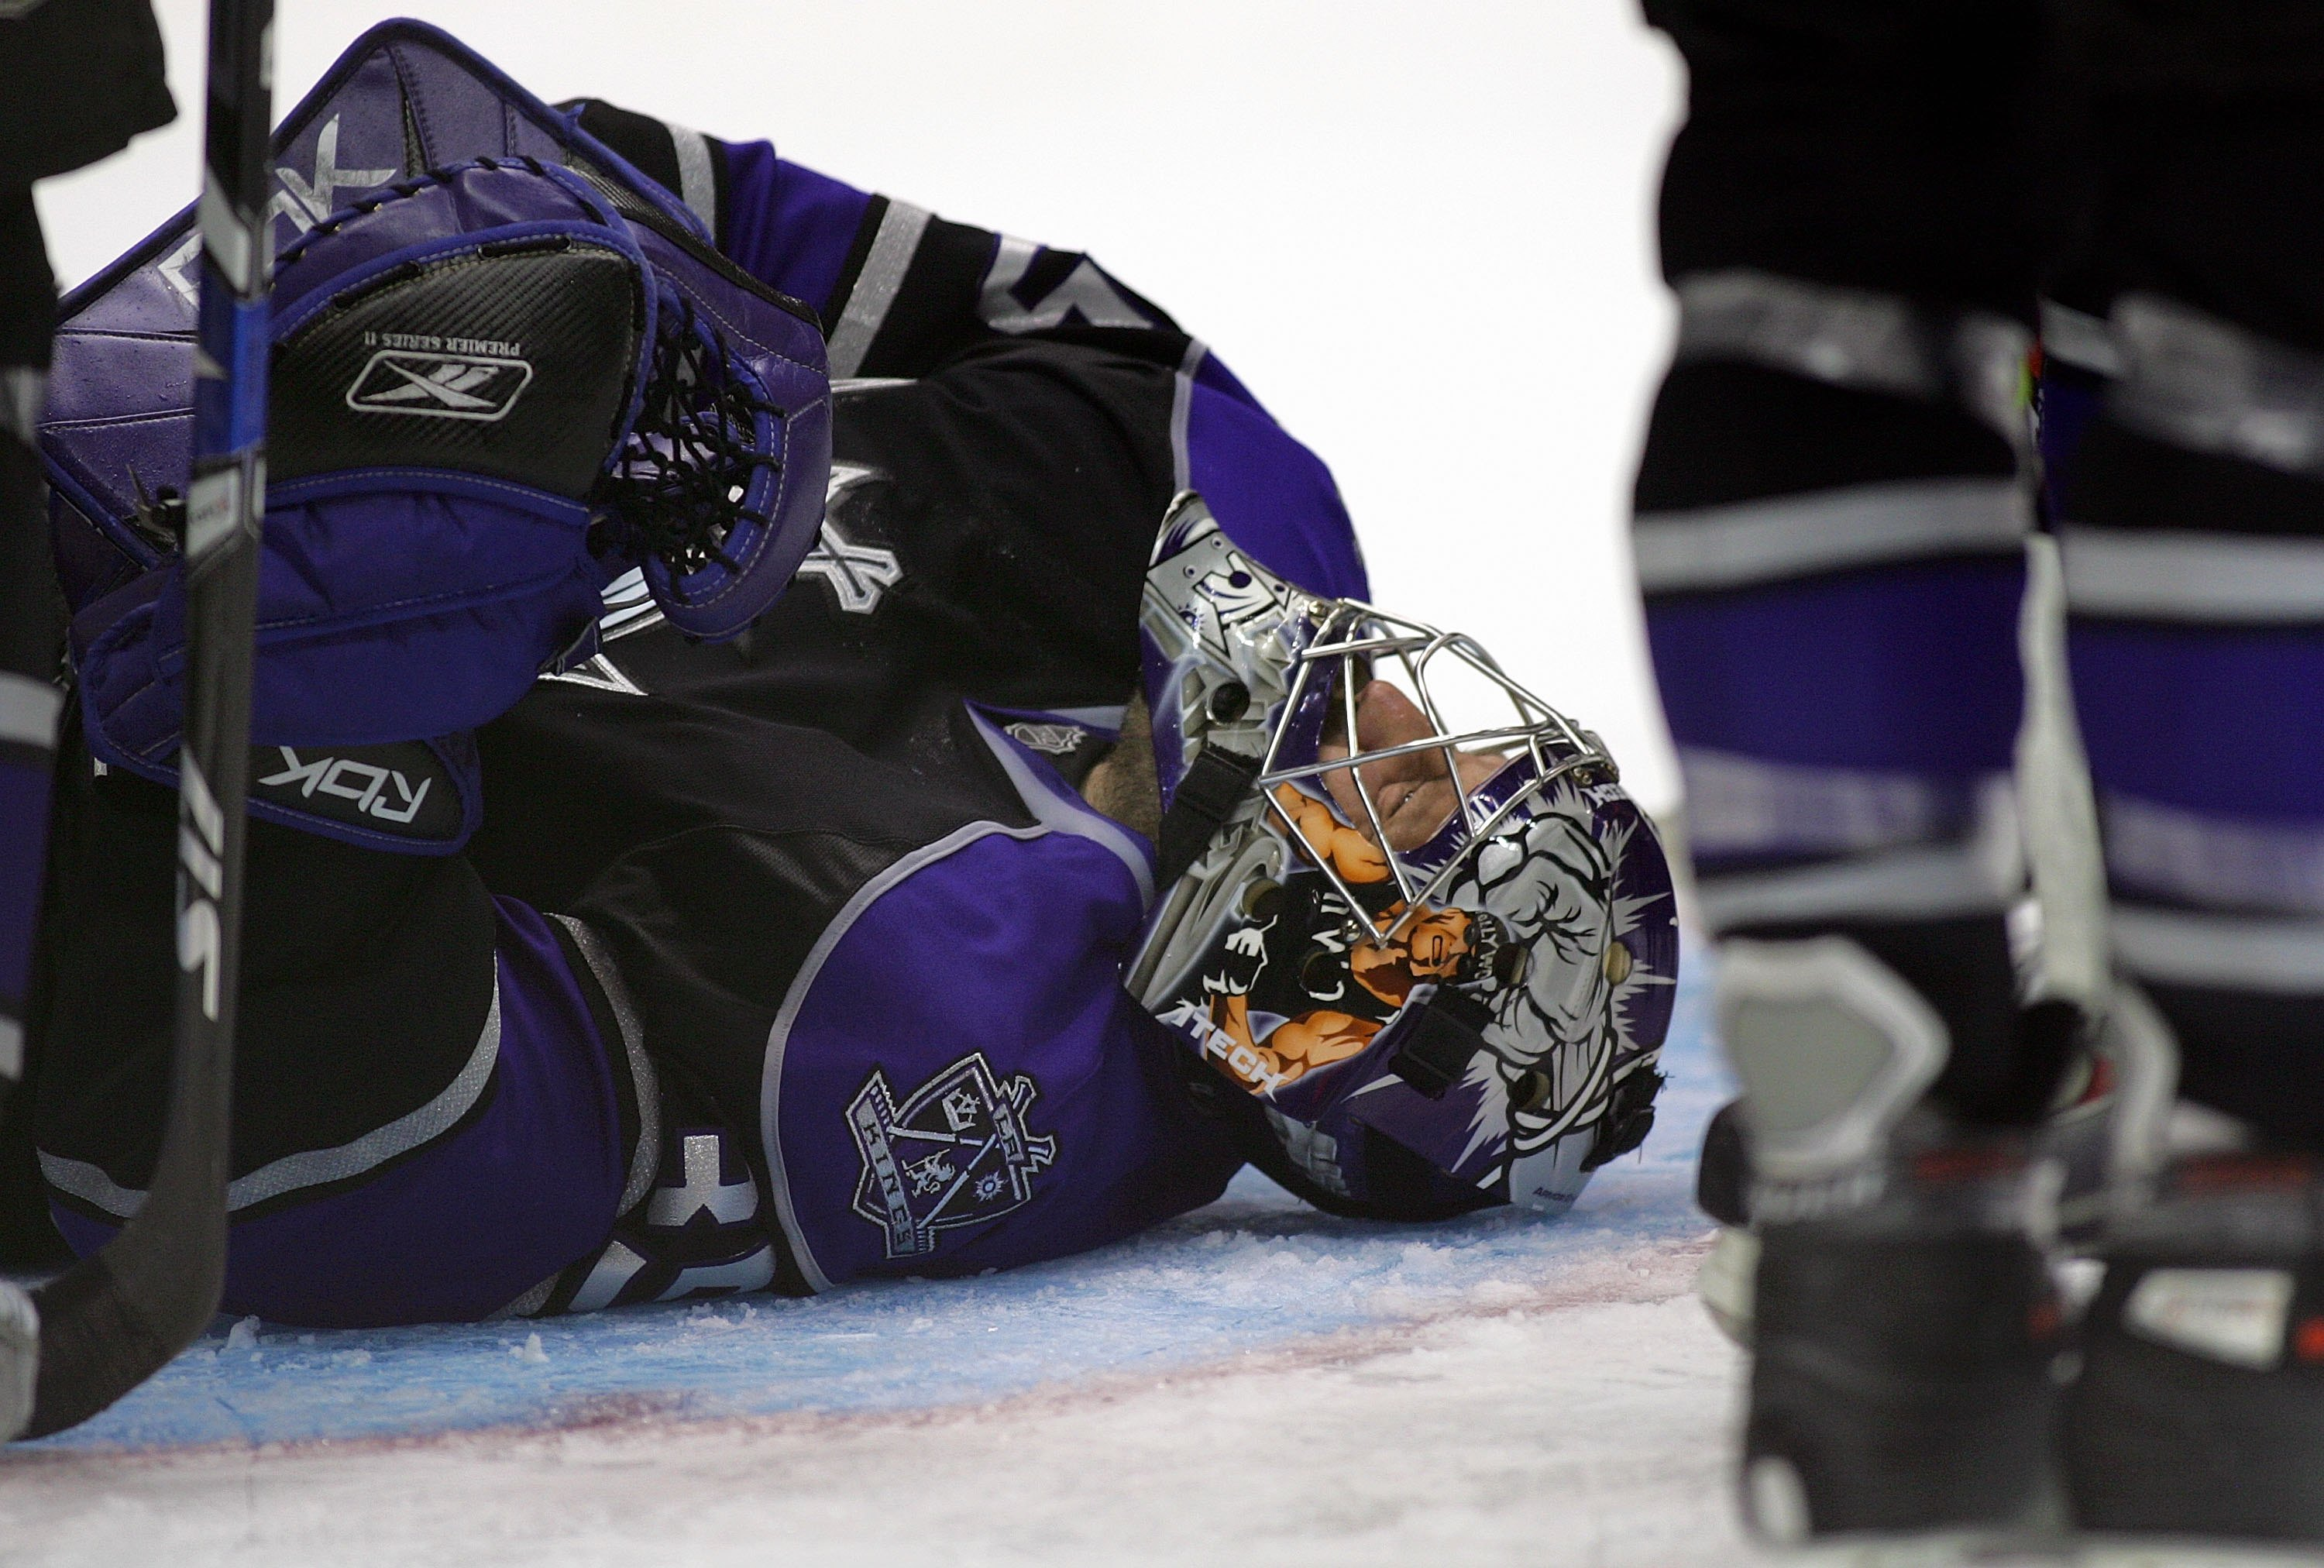 LOS ANGELES, CA - DECEMBER 01:  Goaltender Jason LaBarbera #35 of the Los Angeles Kings lays on the ice after being injured on a play in the crease late in third period during their NHL game against the Colorado Avalanche on December 1, 2007 at the Staple